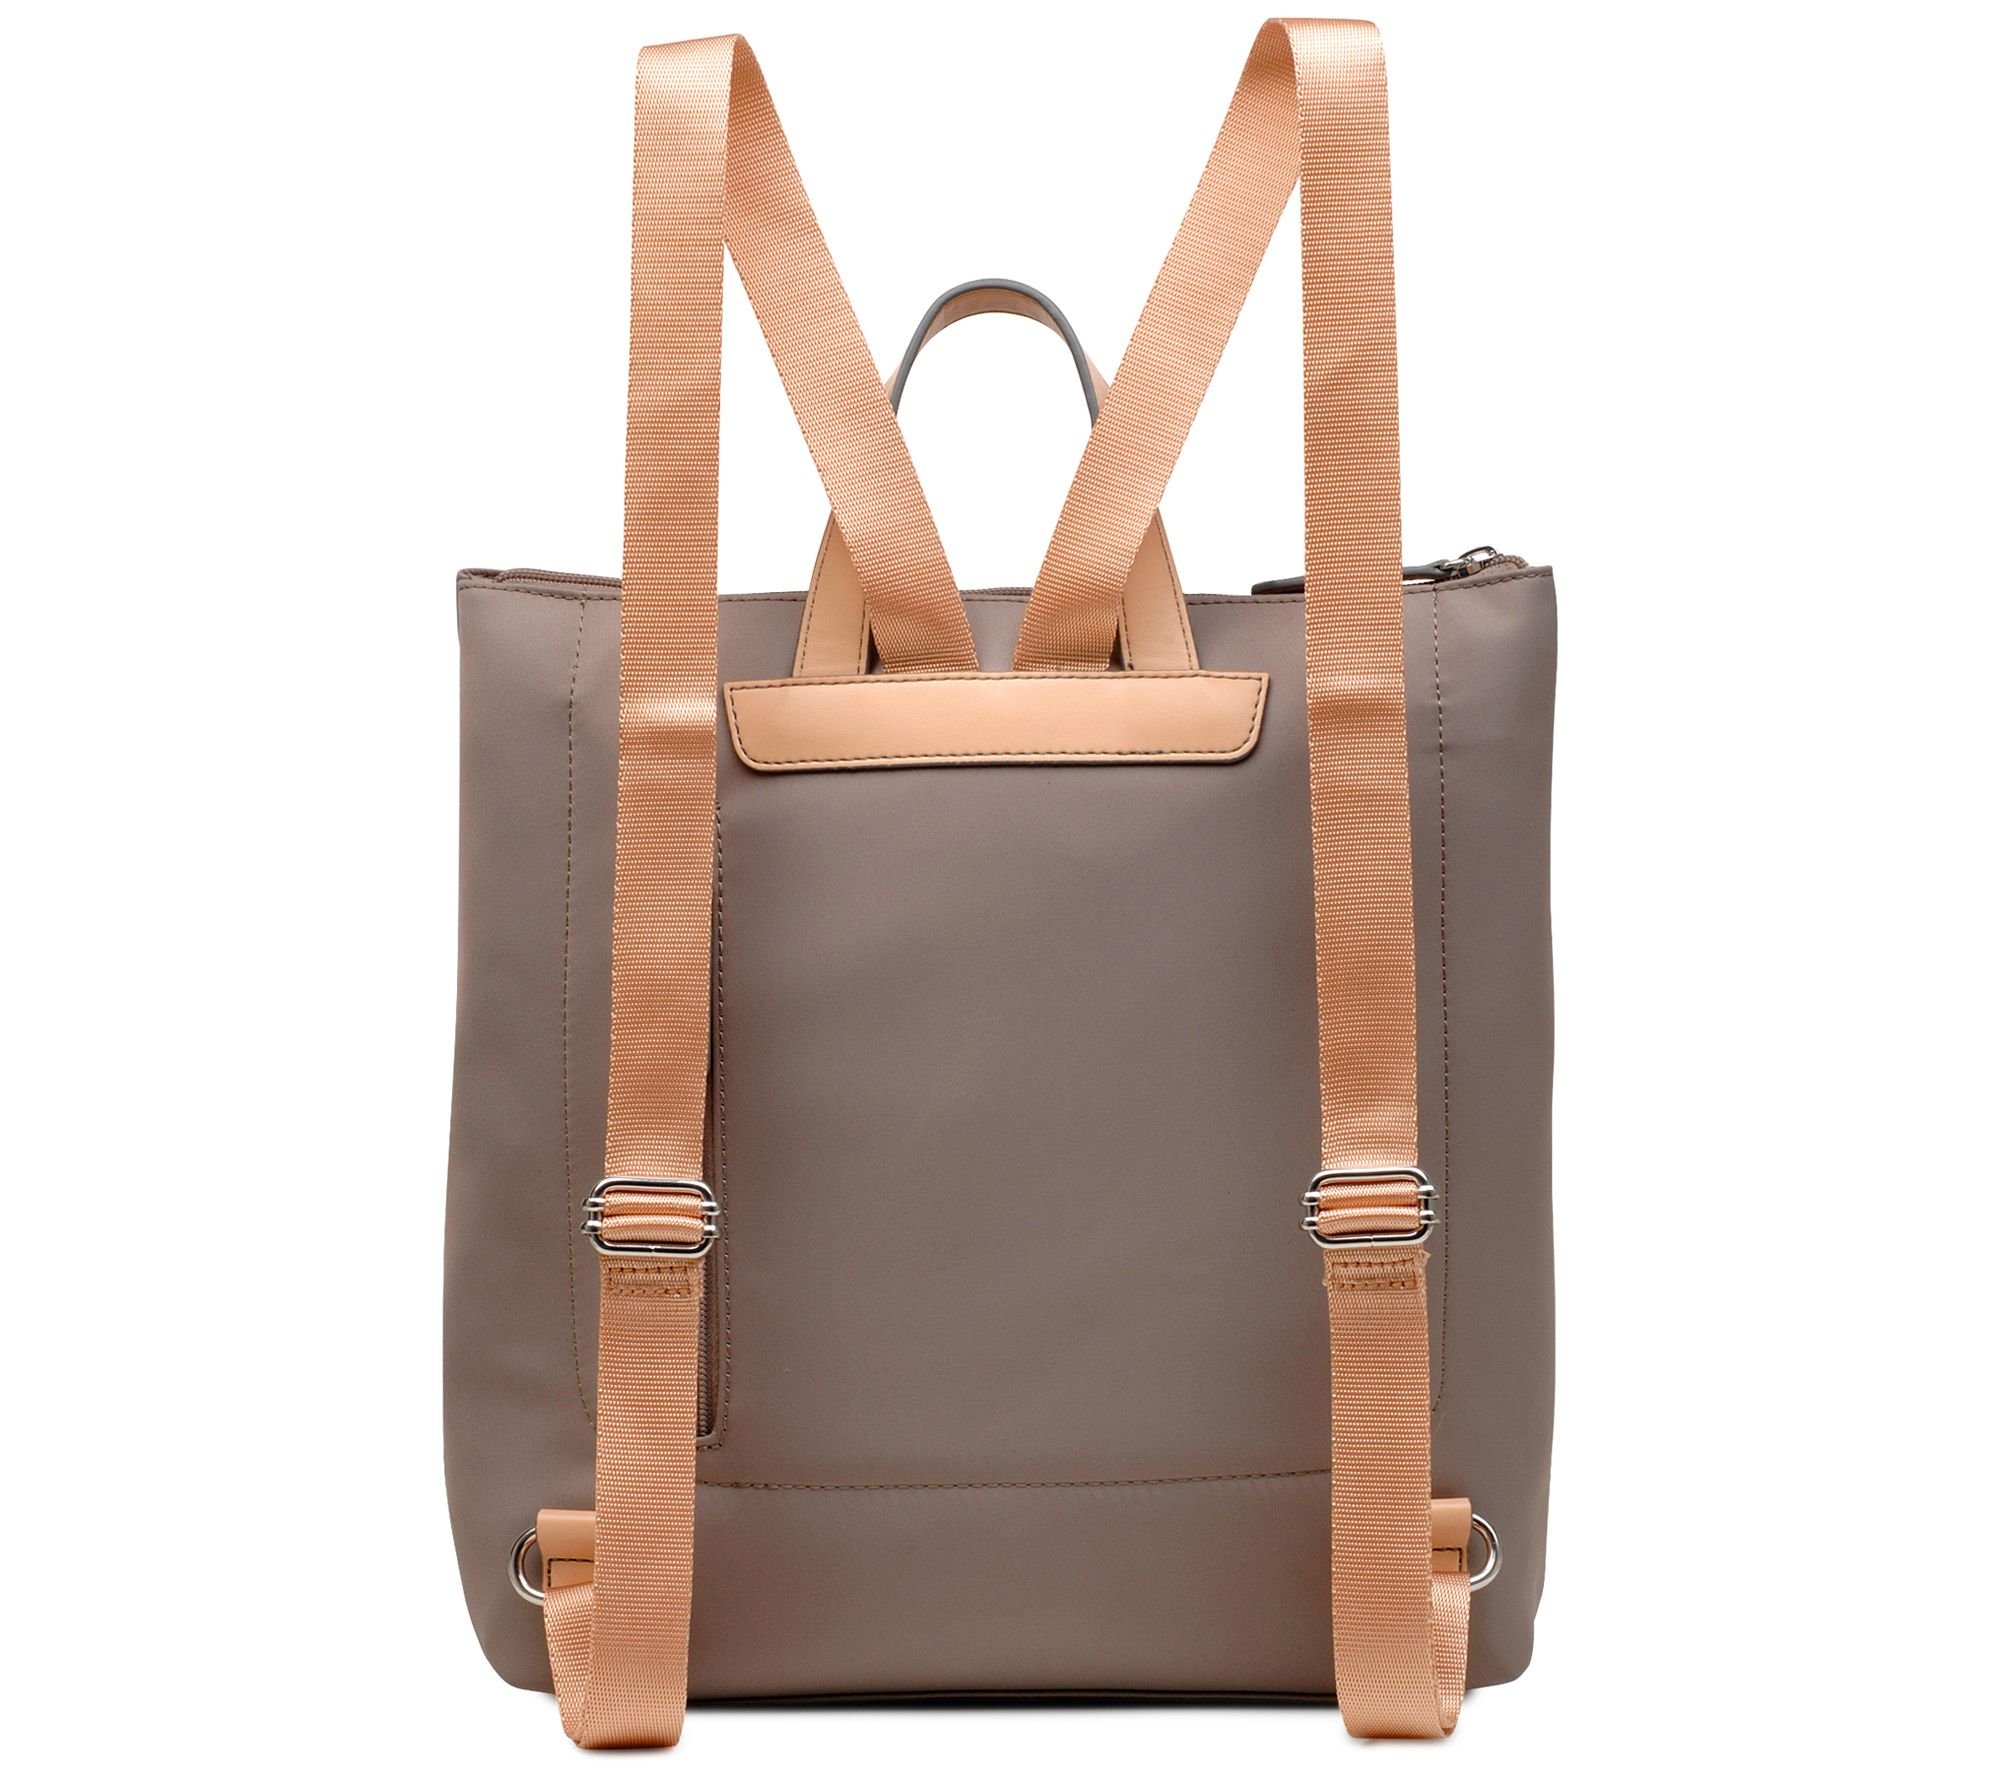 3b8935d616 RADLEY London Nylon Pocket Essentials Backpack - Page 1 — QVC.com